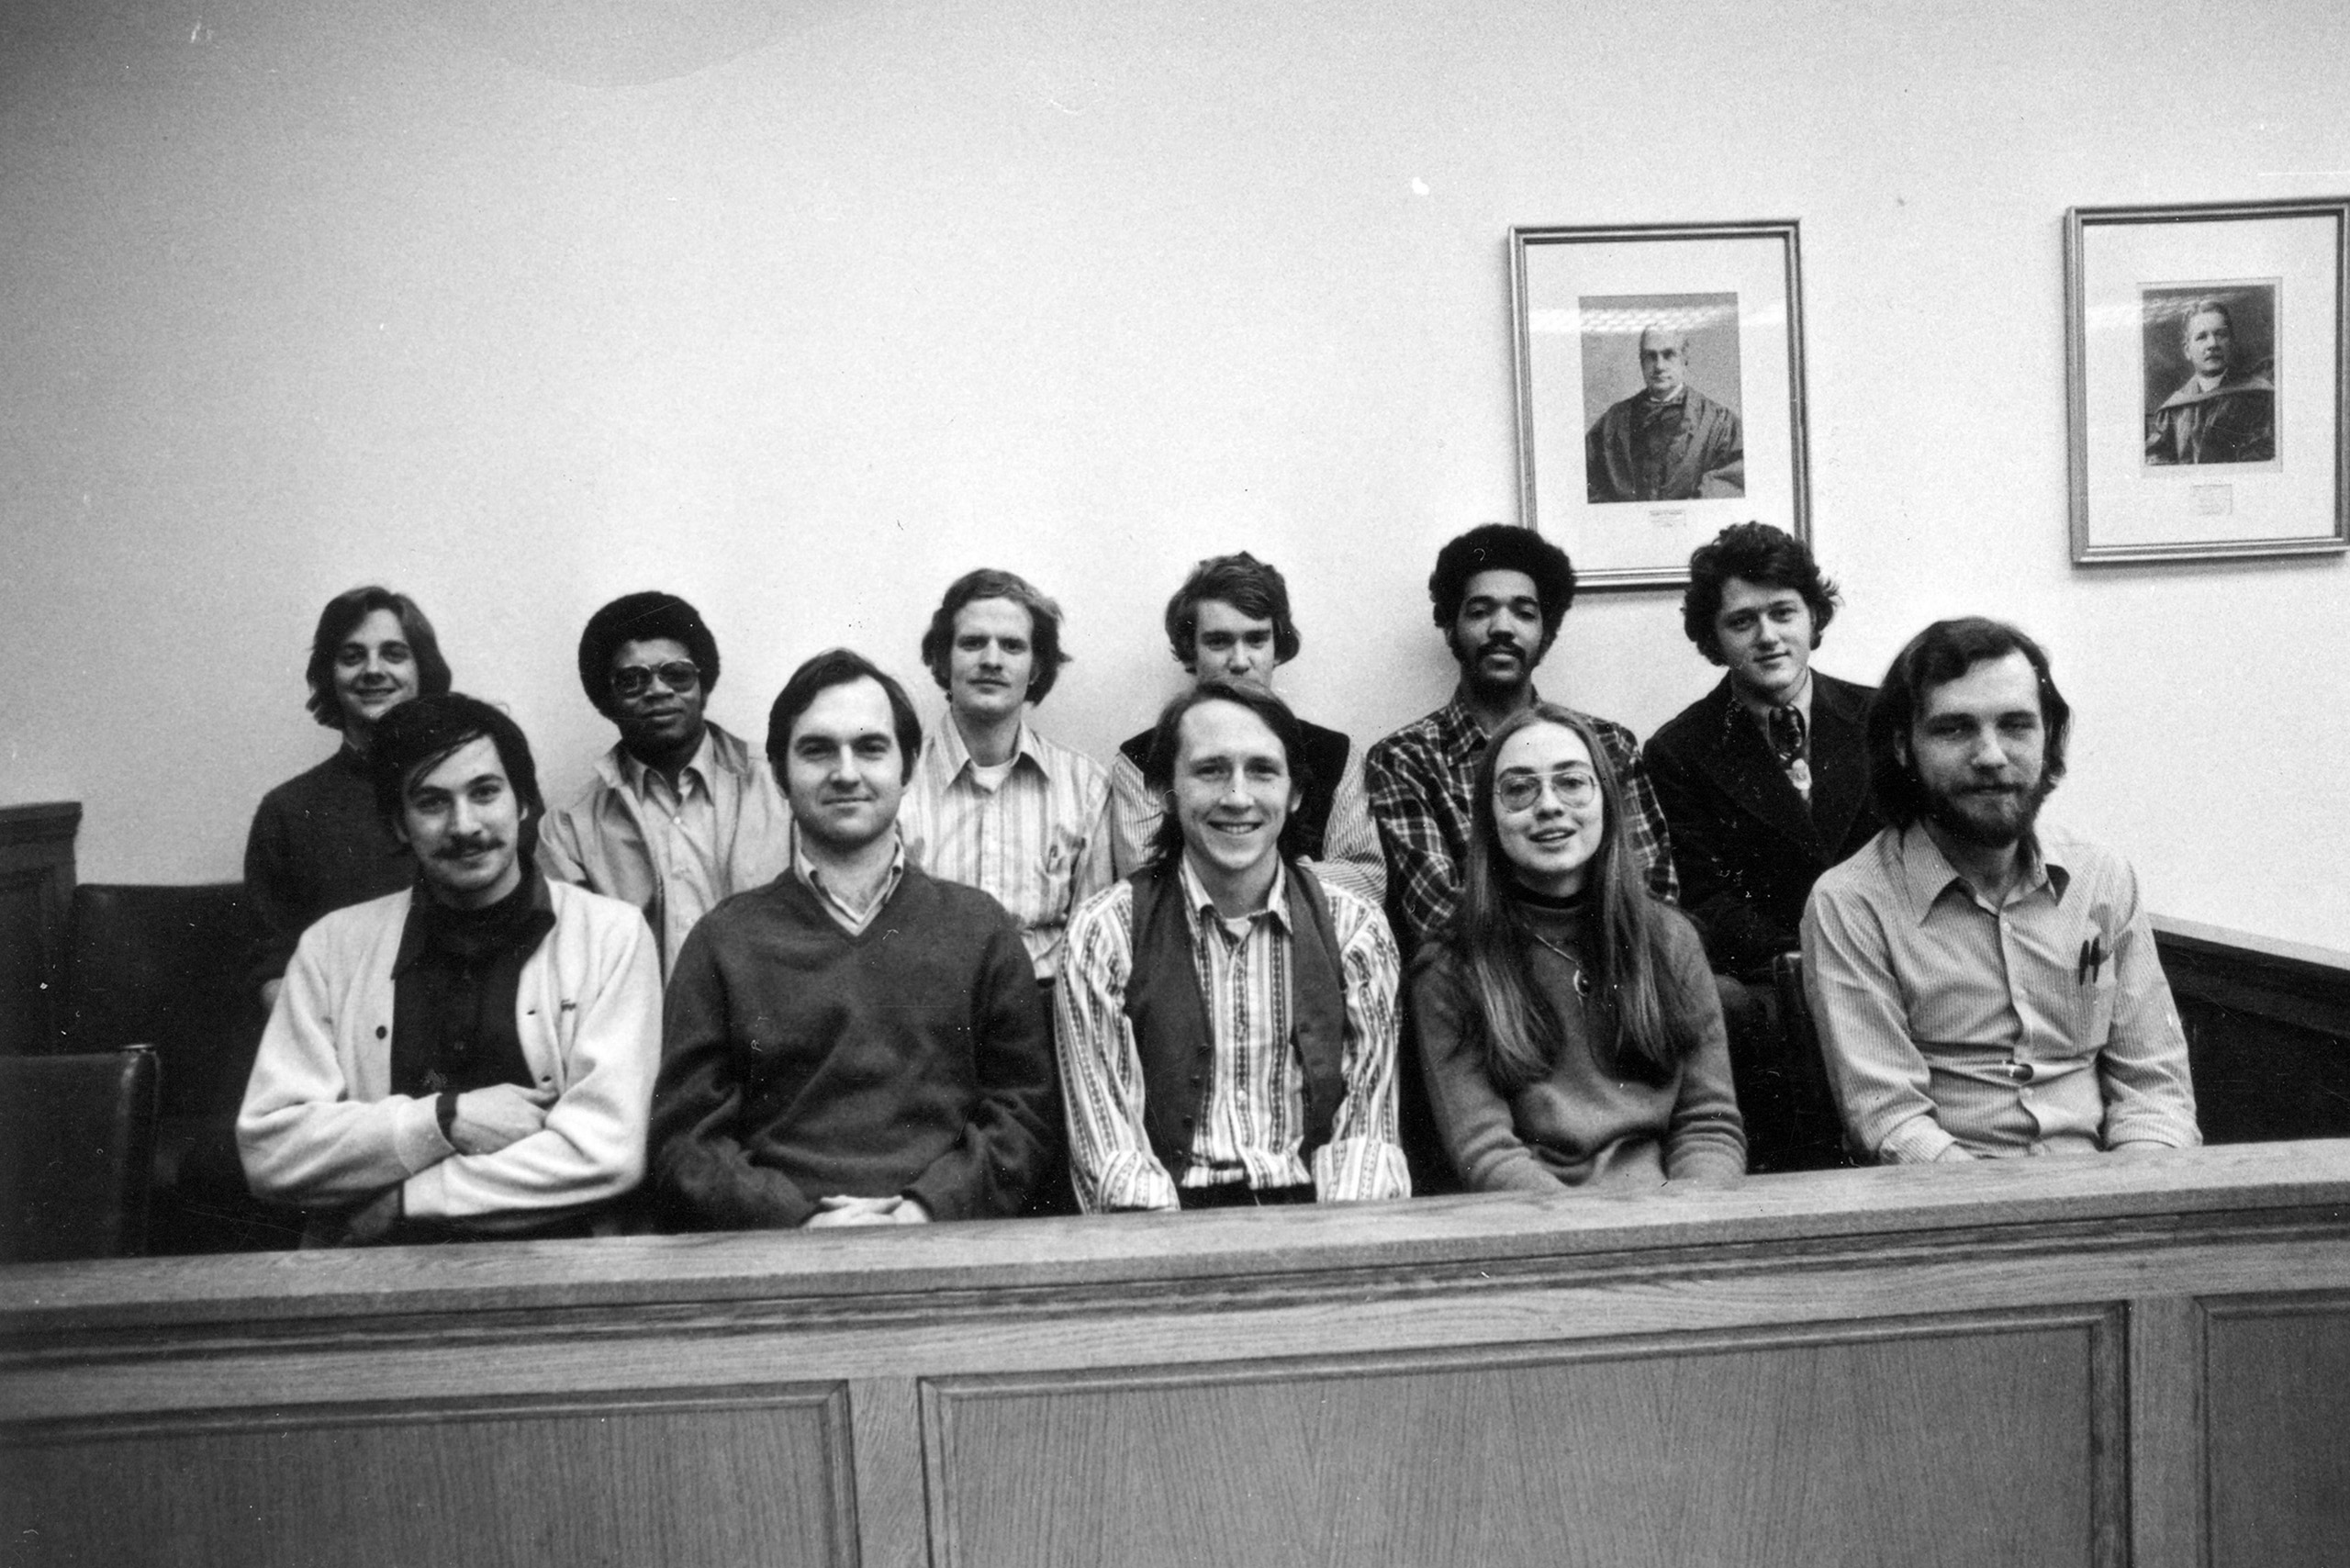 Hillary (bottom right) and her classmates at Yale, 1973.